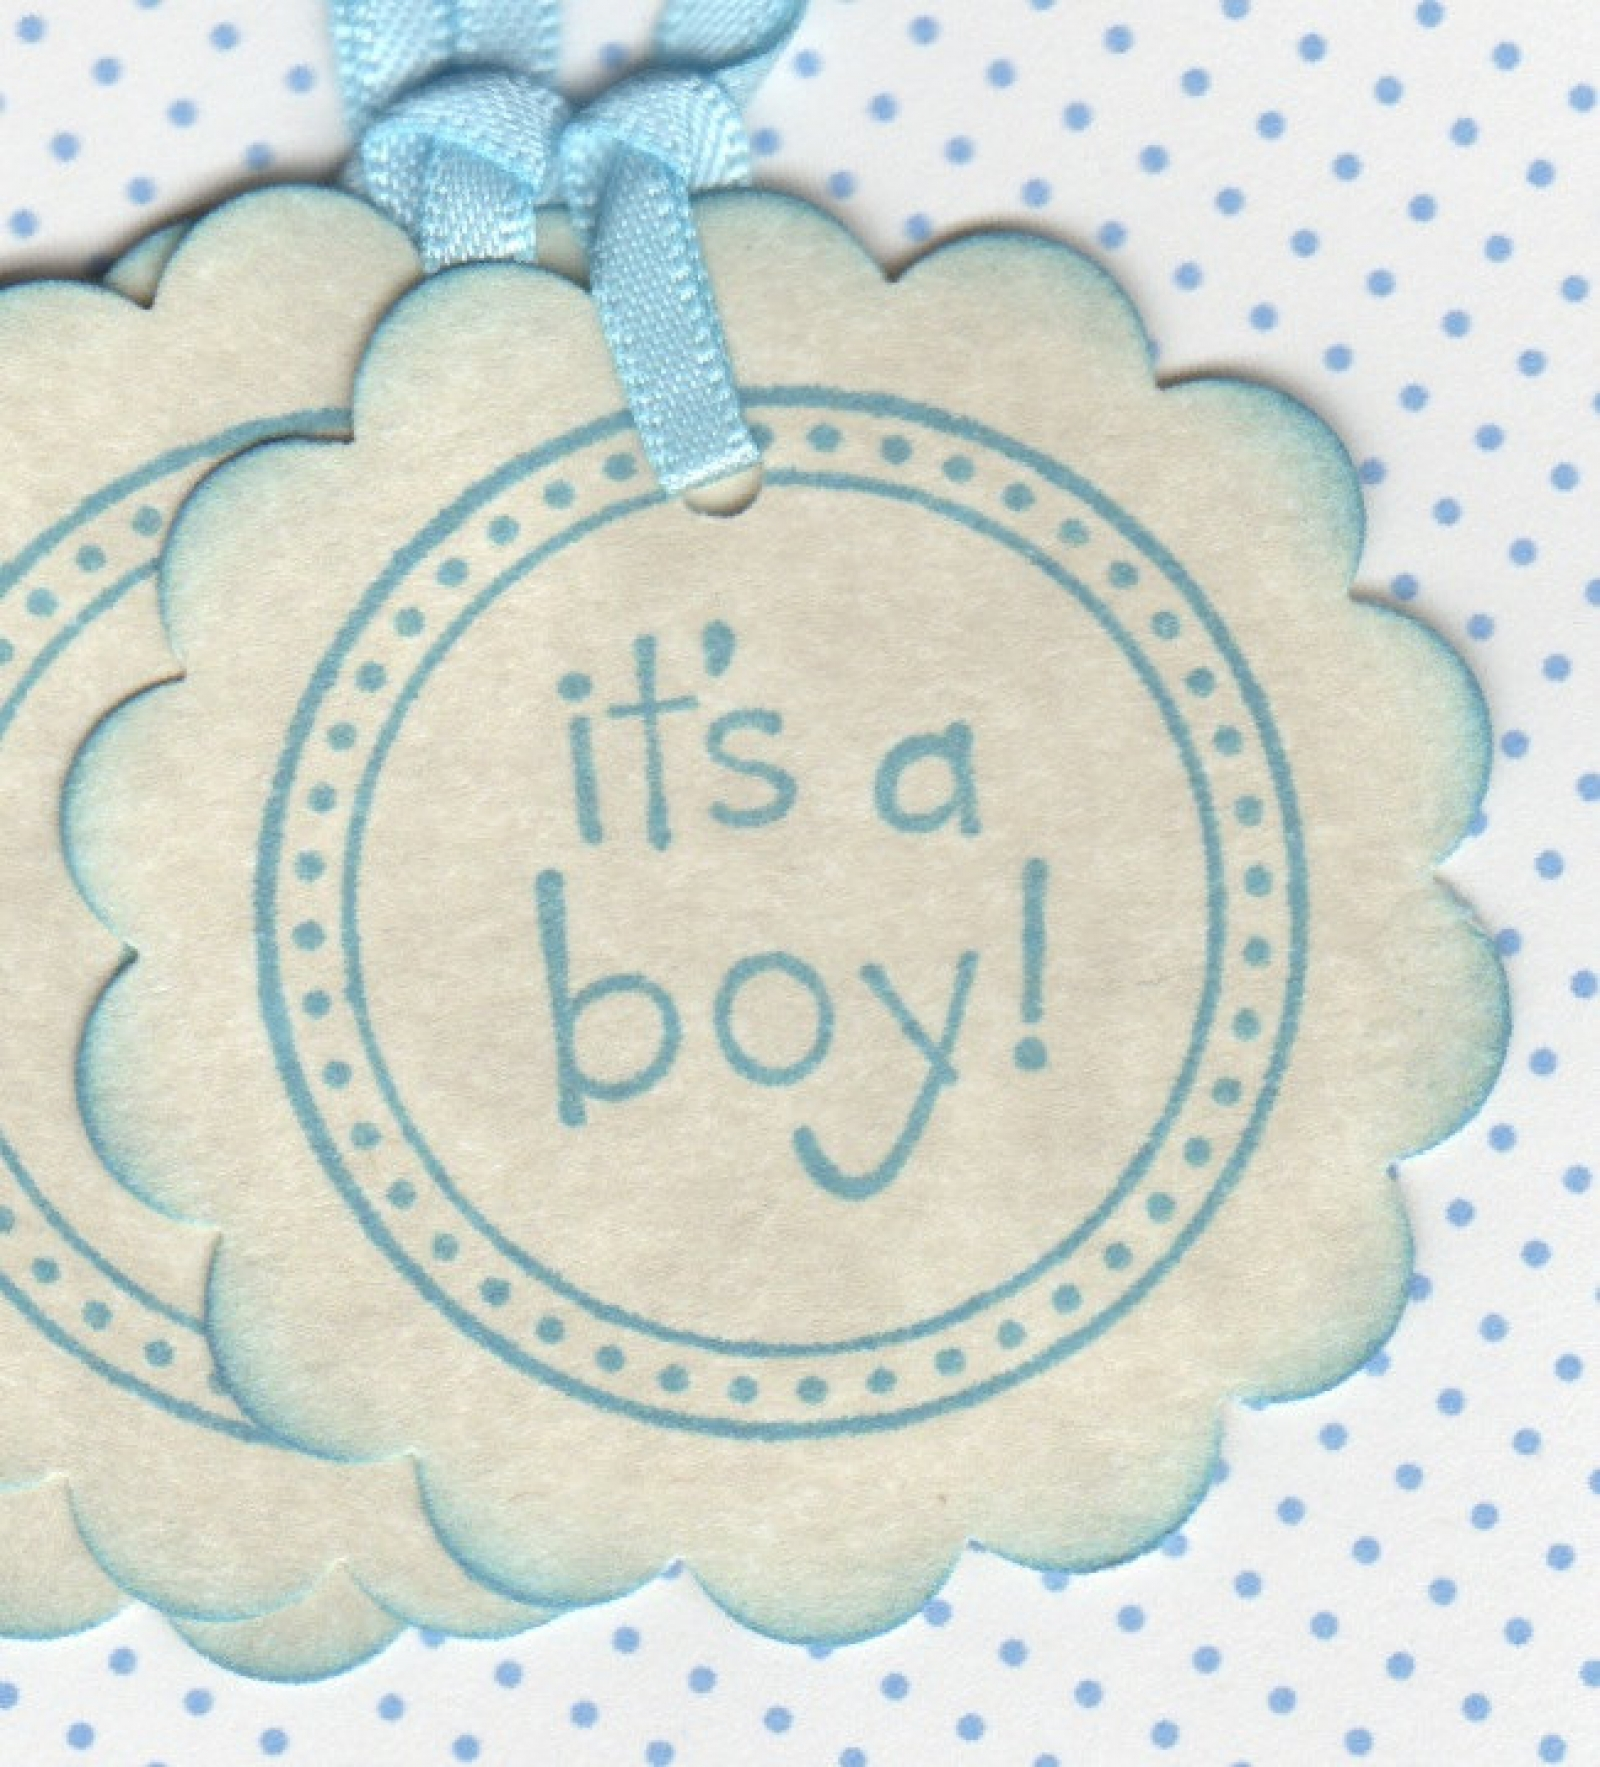 20 Baby Shower Favor Tags It S A Boy Baby Baby Tags Nail Polish Favor Tags Place Cards Gift Tags Labels Blue Vintage Style